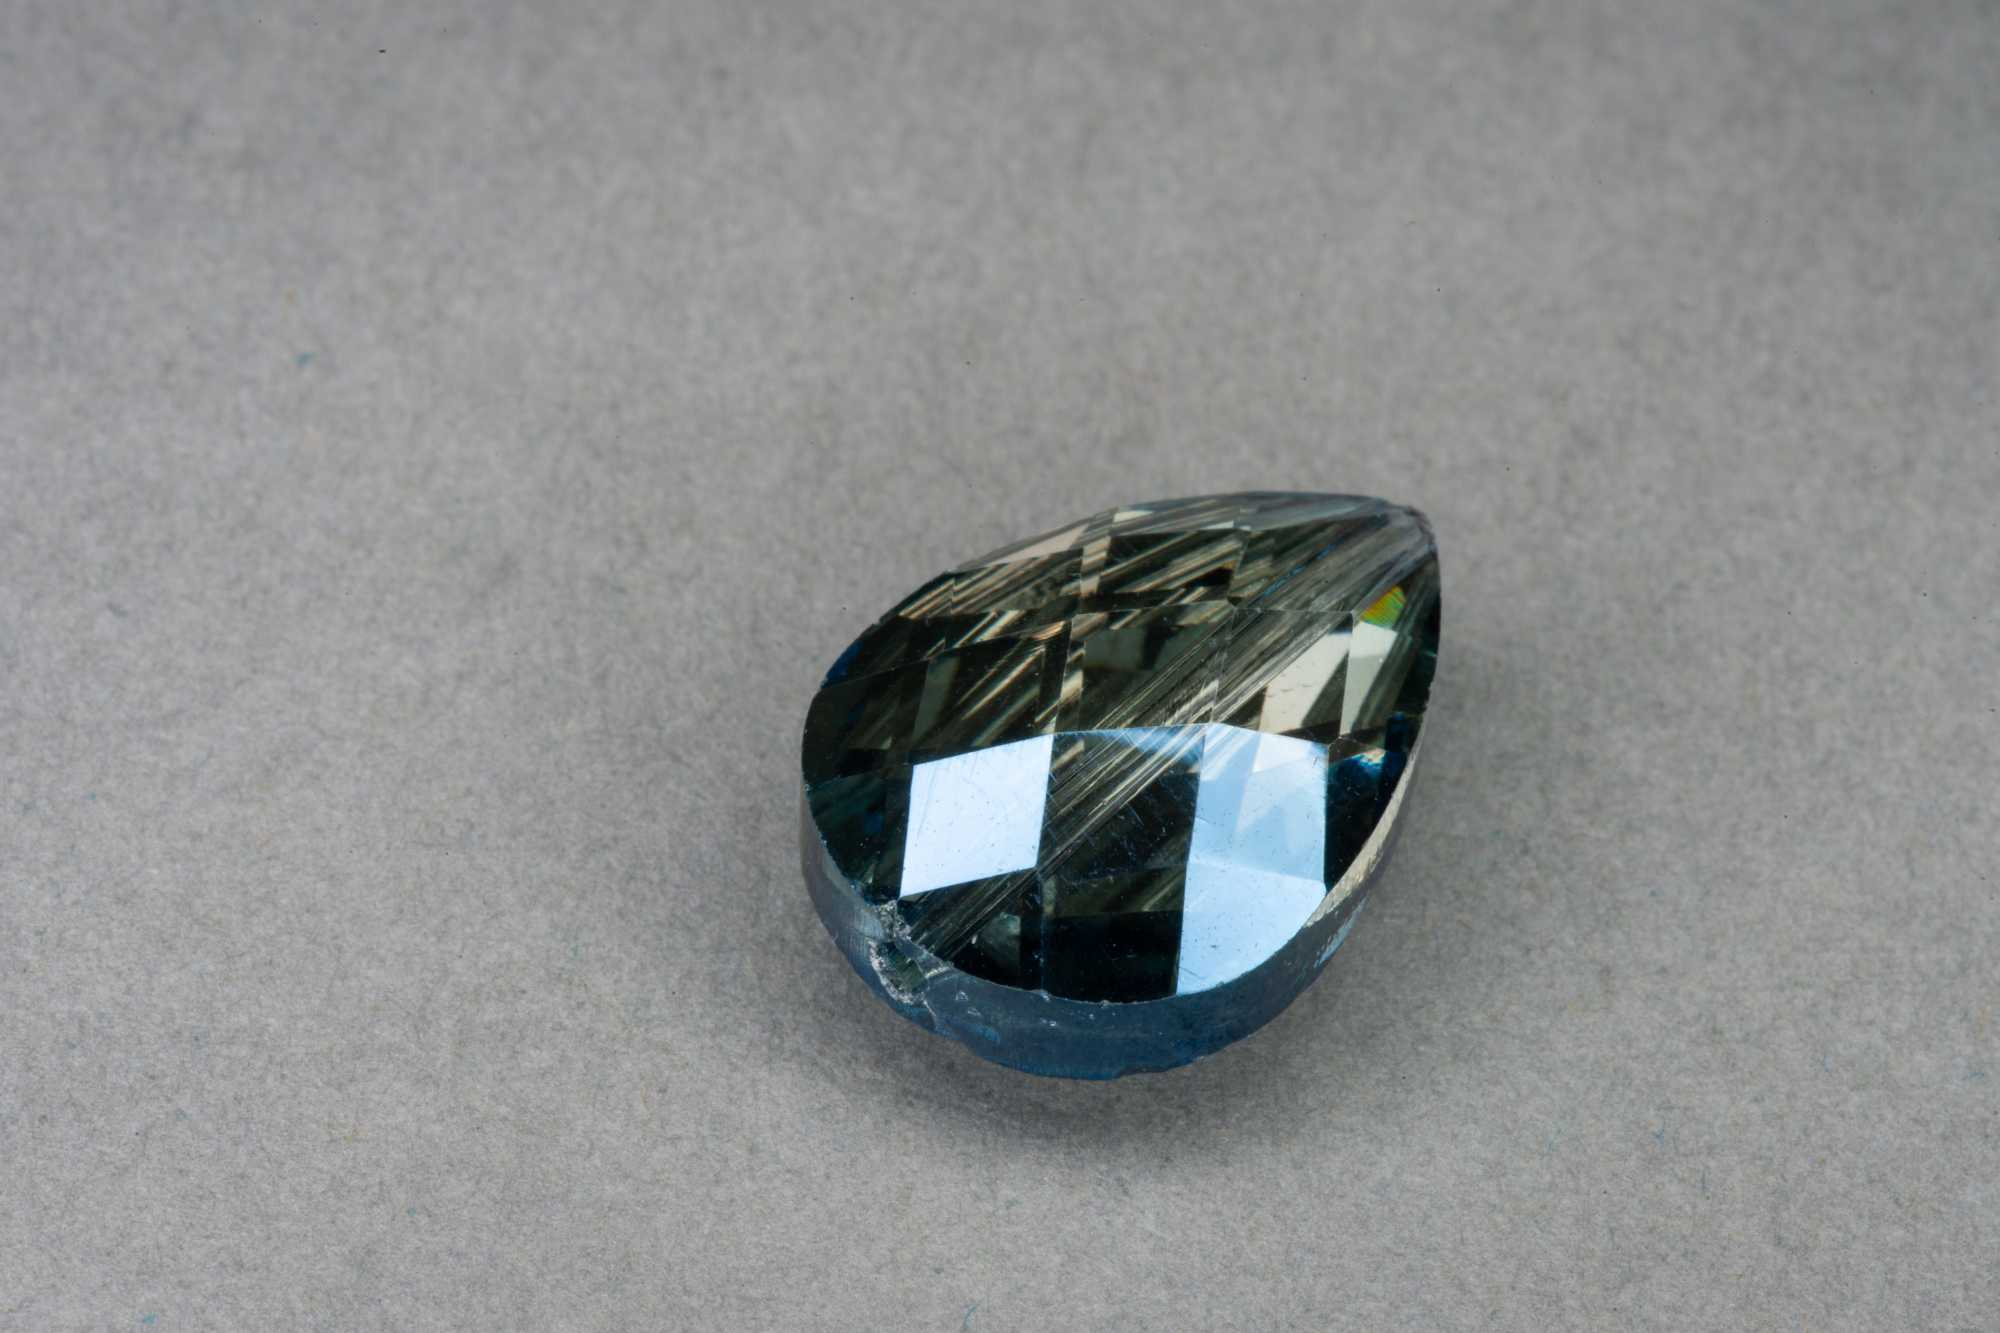 Midnight Pear Shape Faceted Glass Bead 18x13x8mm